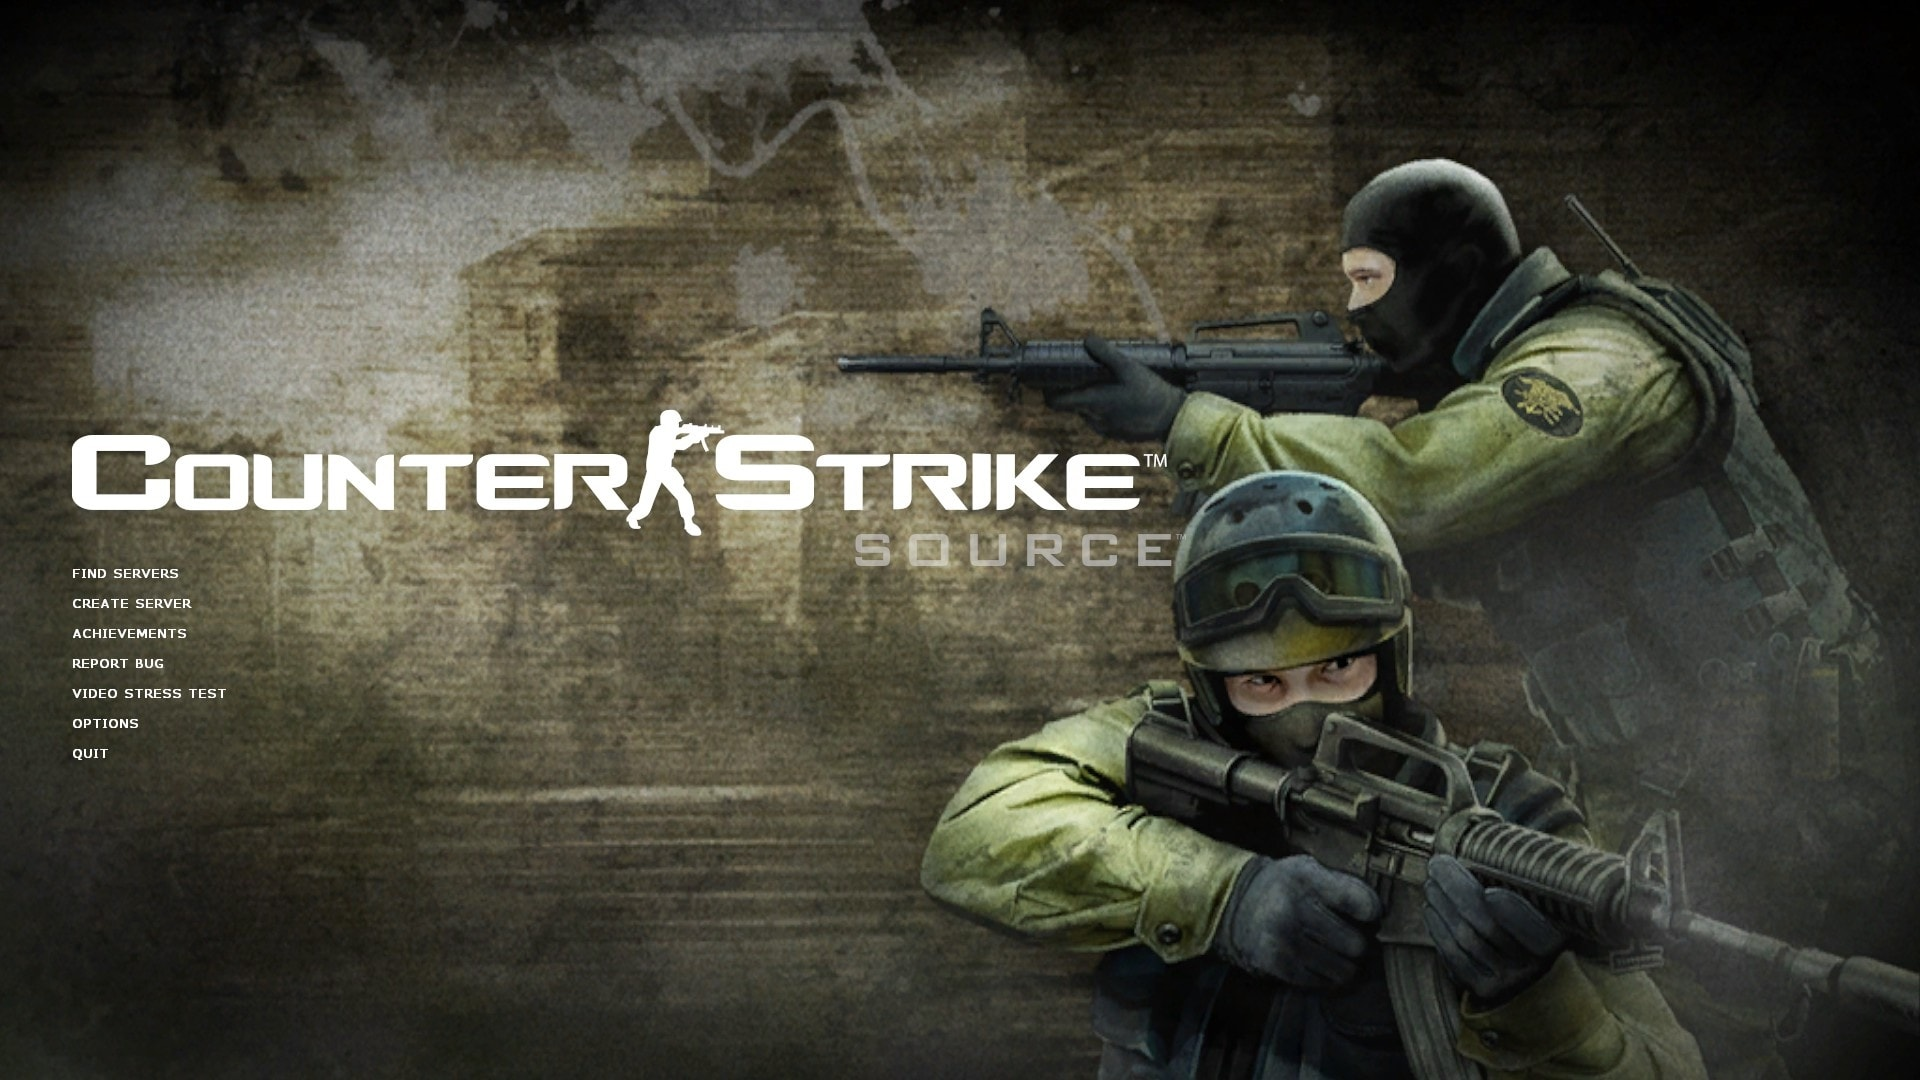 Counter strike source hd desktop wallpapers 7wallpapers counter strike source wallpapers counter strike source widescreen wallpapers voltagebd Choice Image